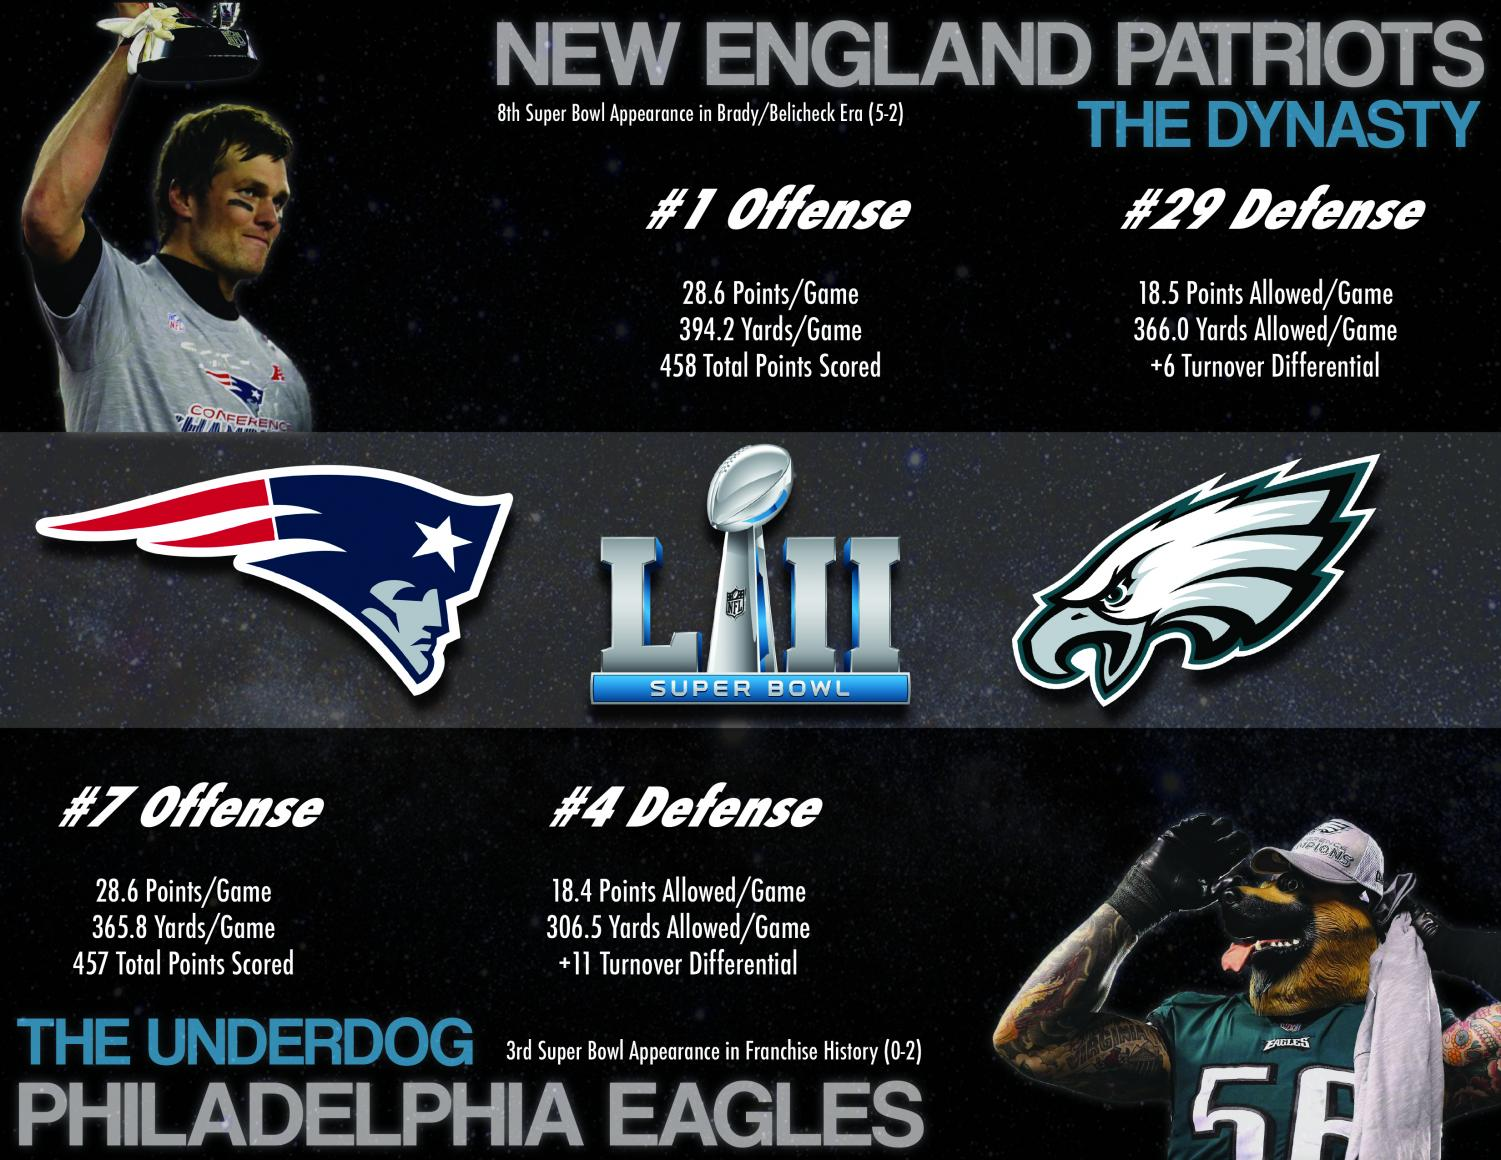 The defending champion New England Patriots or the underdog Philadelphia Eagles: a new NFL champion will be crowned today.